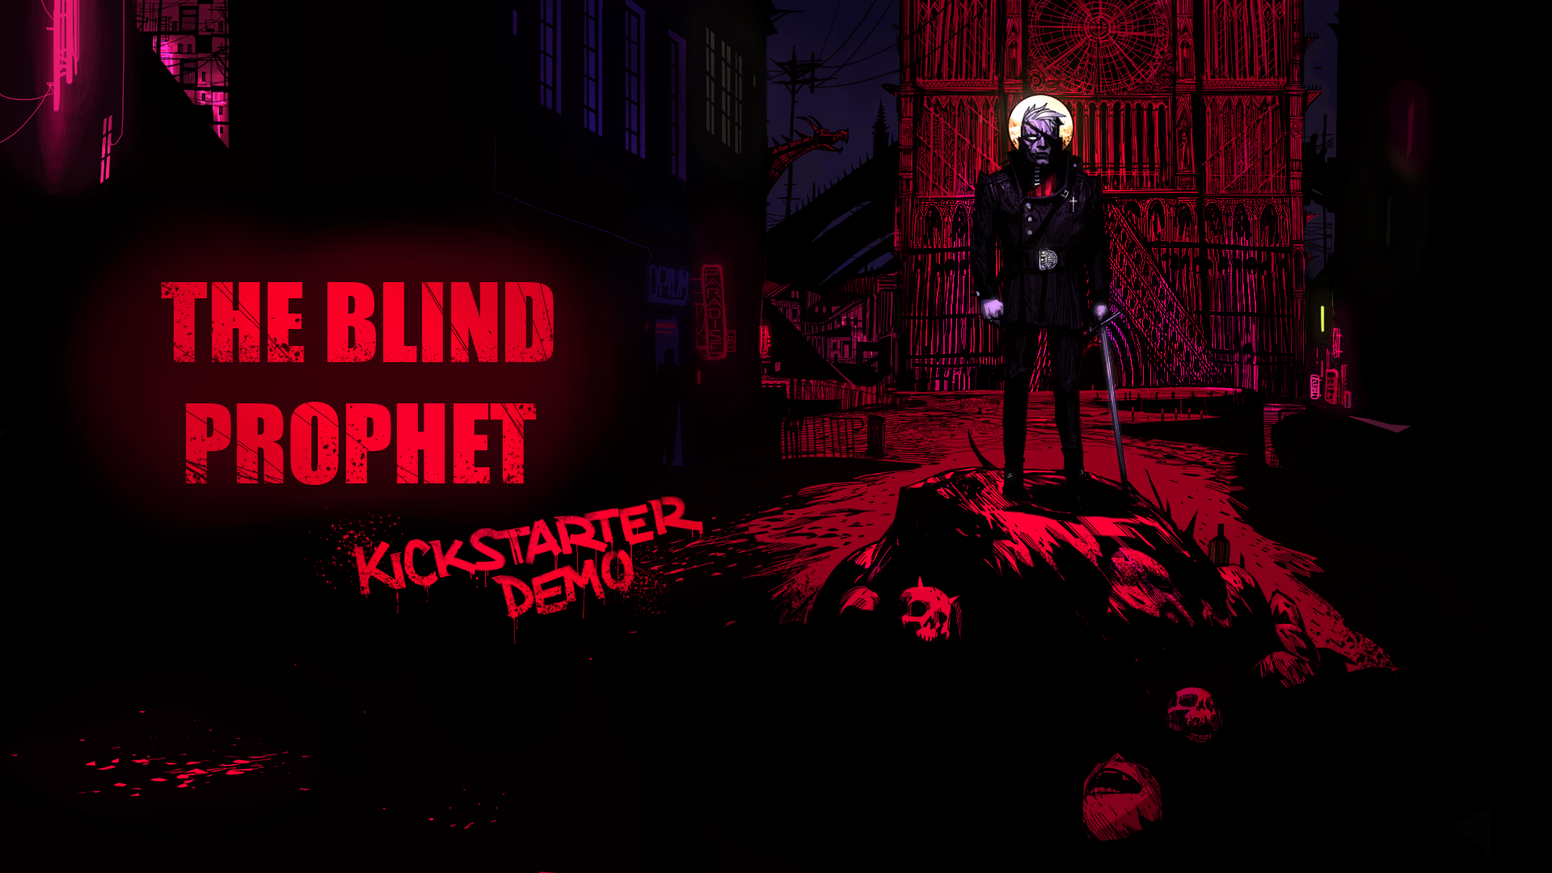 A dark and mature point 'n' click adventure and narrative game set in a corrupted city.